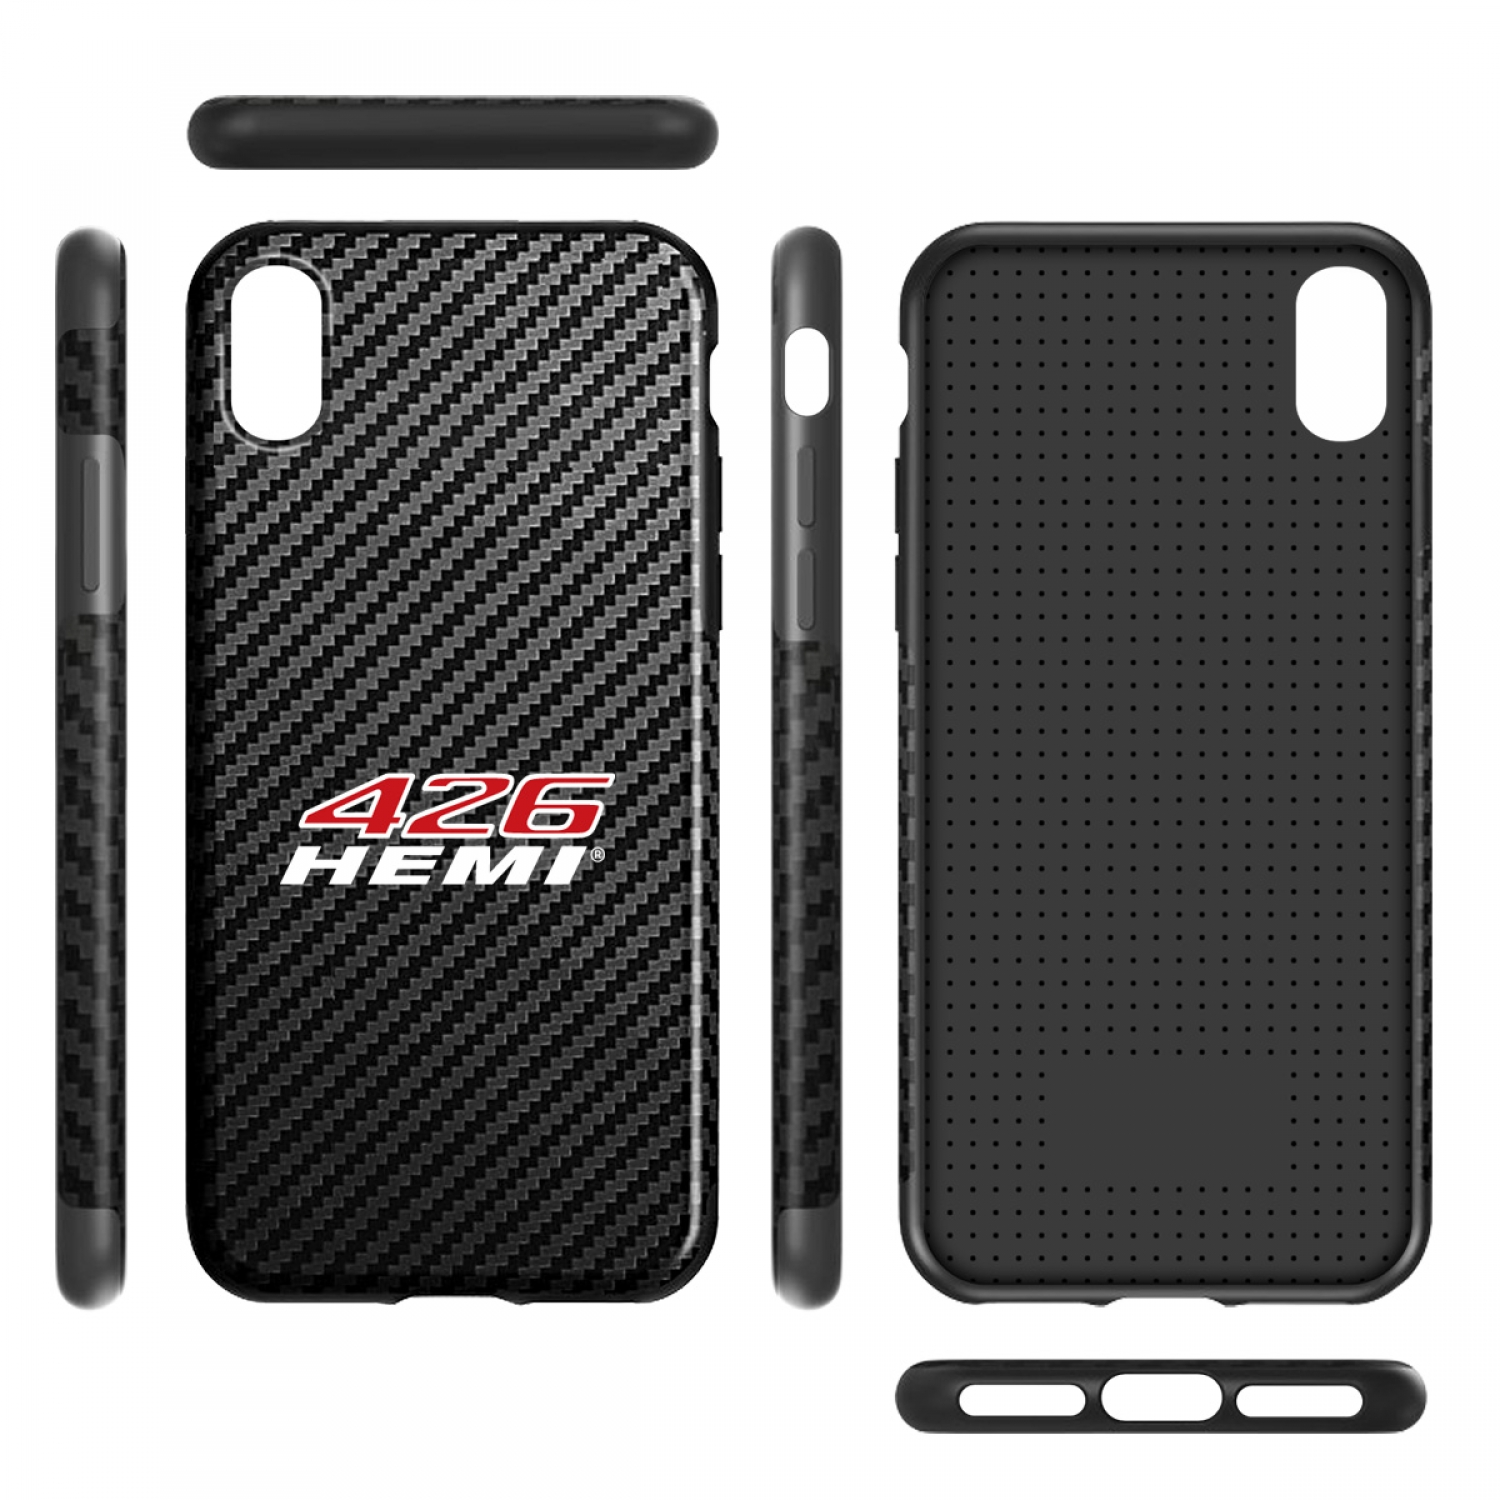 HEMI 426 HP iPhone X Black Carbon Fiber Texture Leather TPU Shockproof Cell Phone Case